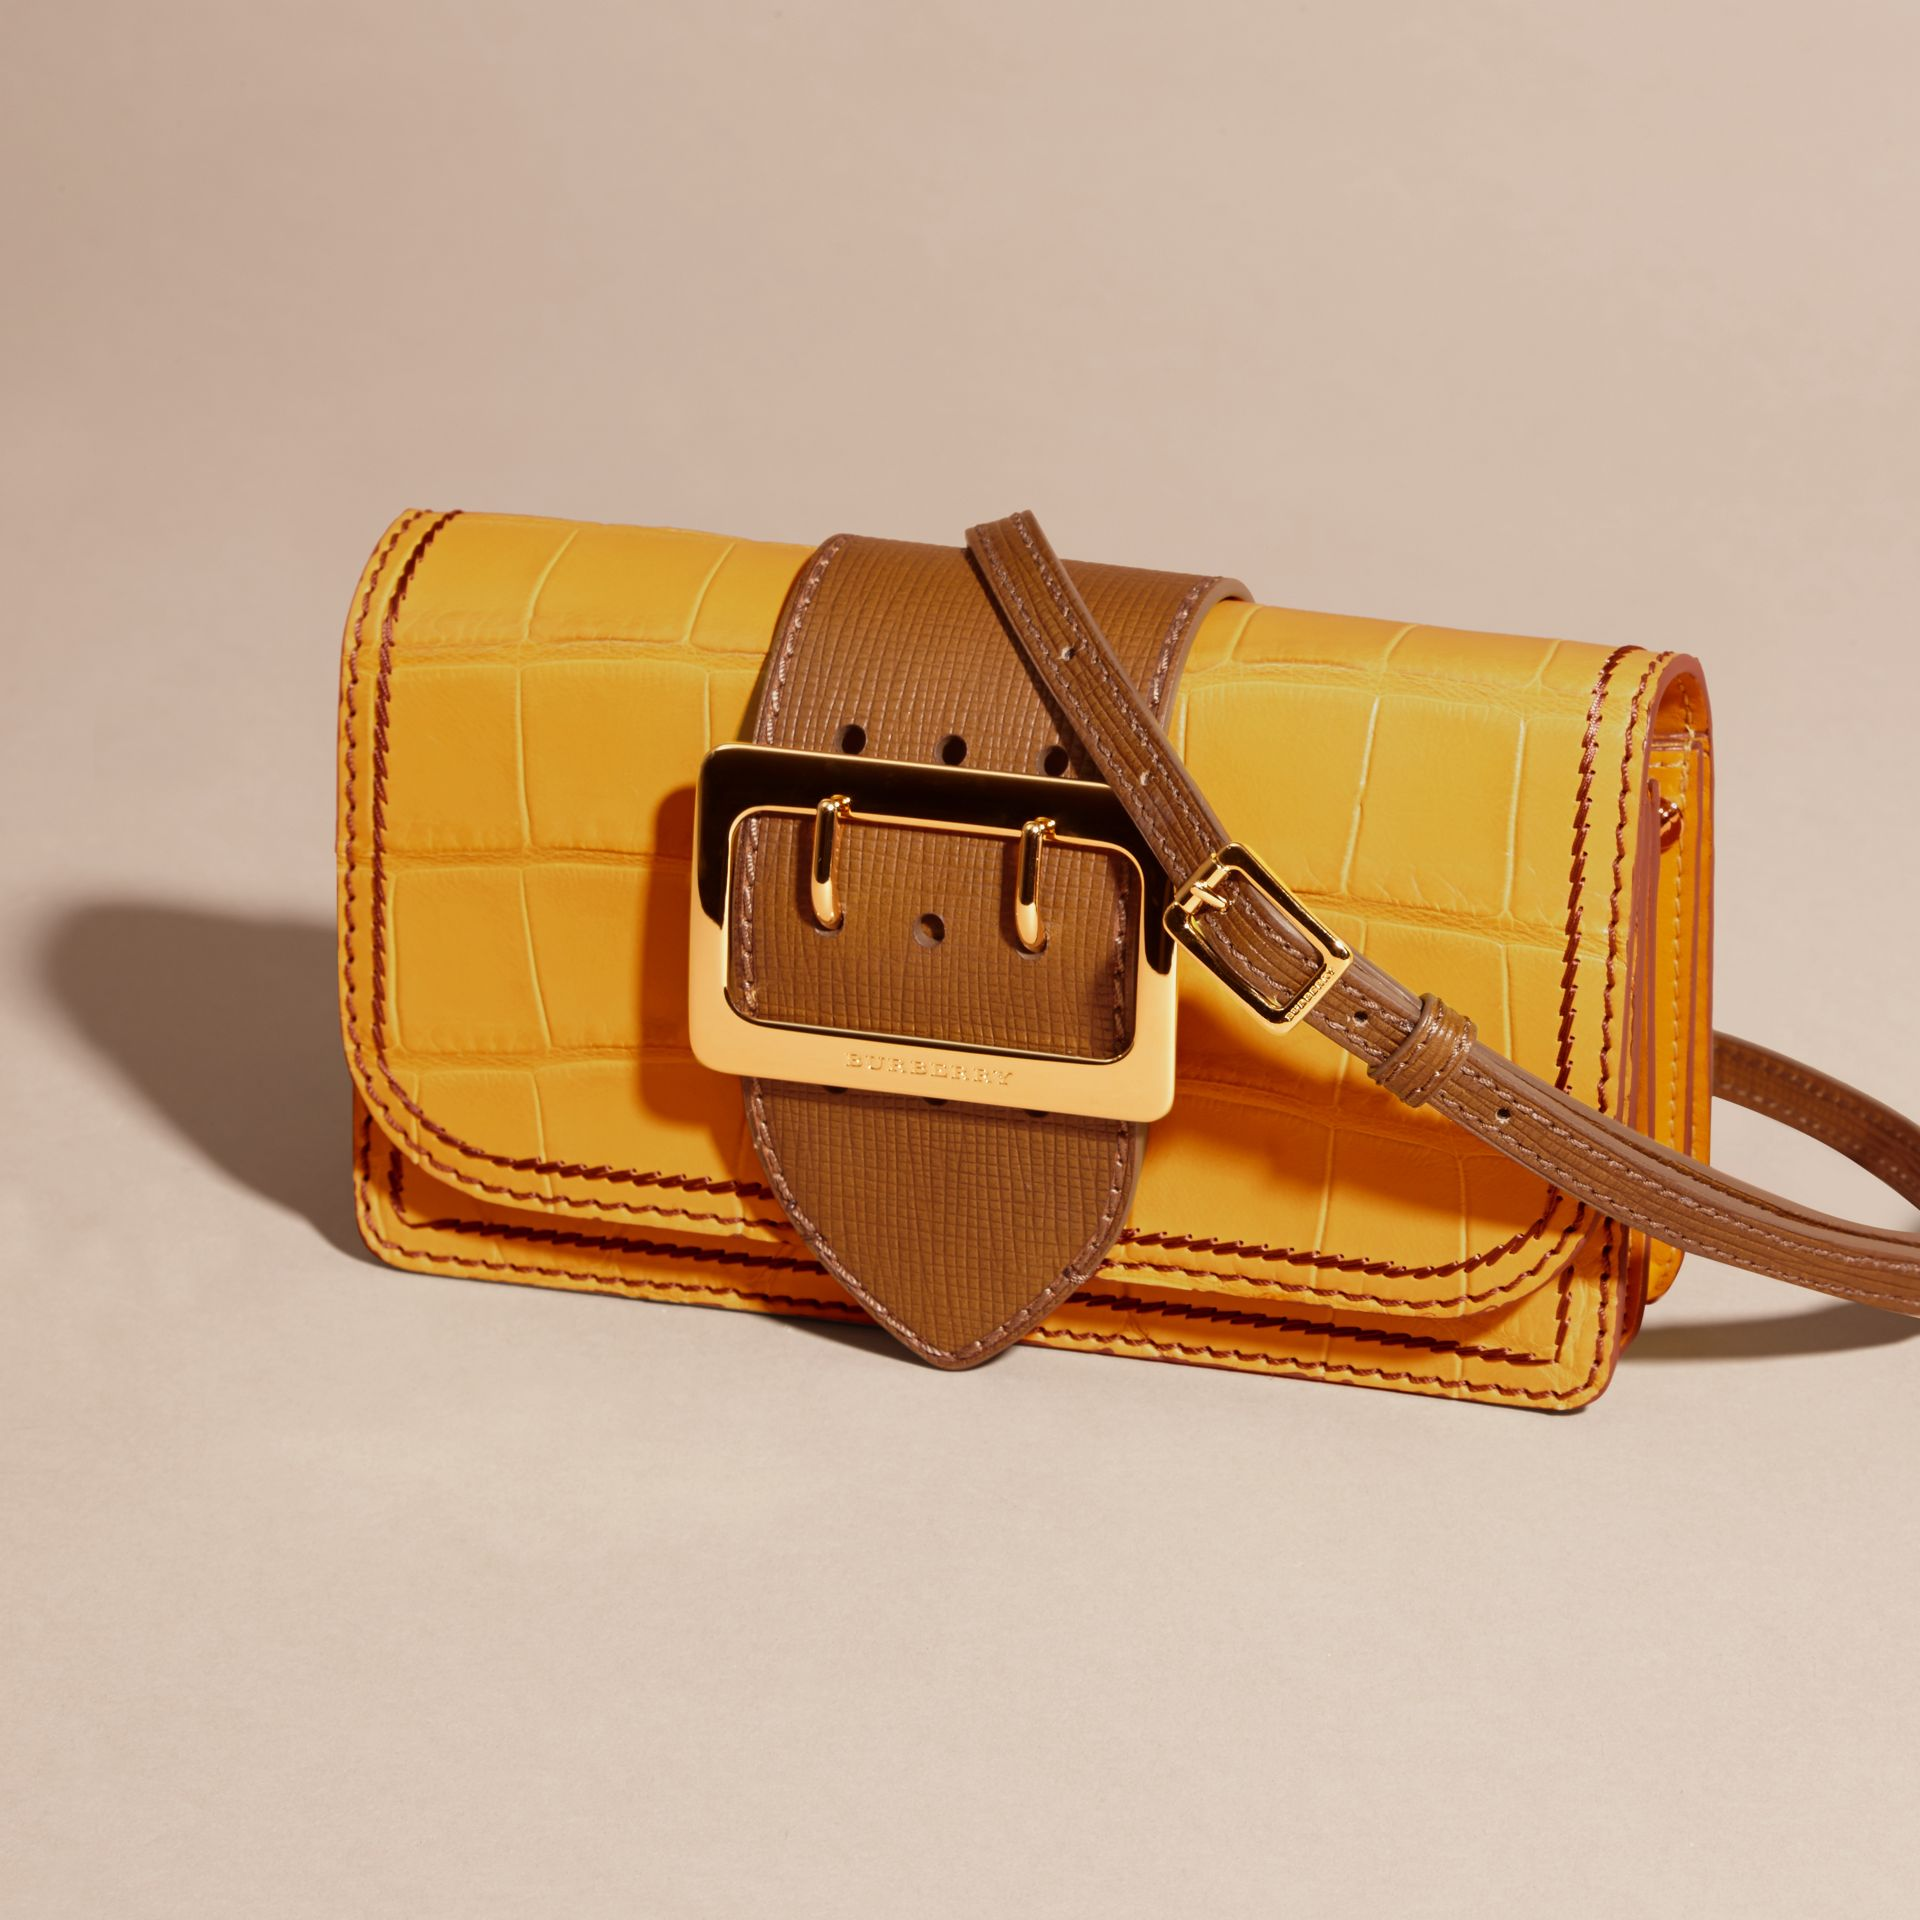 Citrus yellow / tan The Small Buckle Bag in Alligator and Leather Citrus Yellow / Tan - gallery image 8